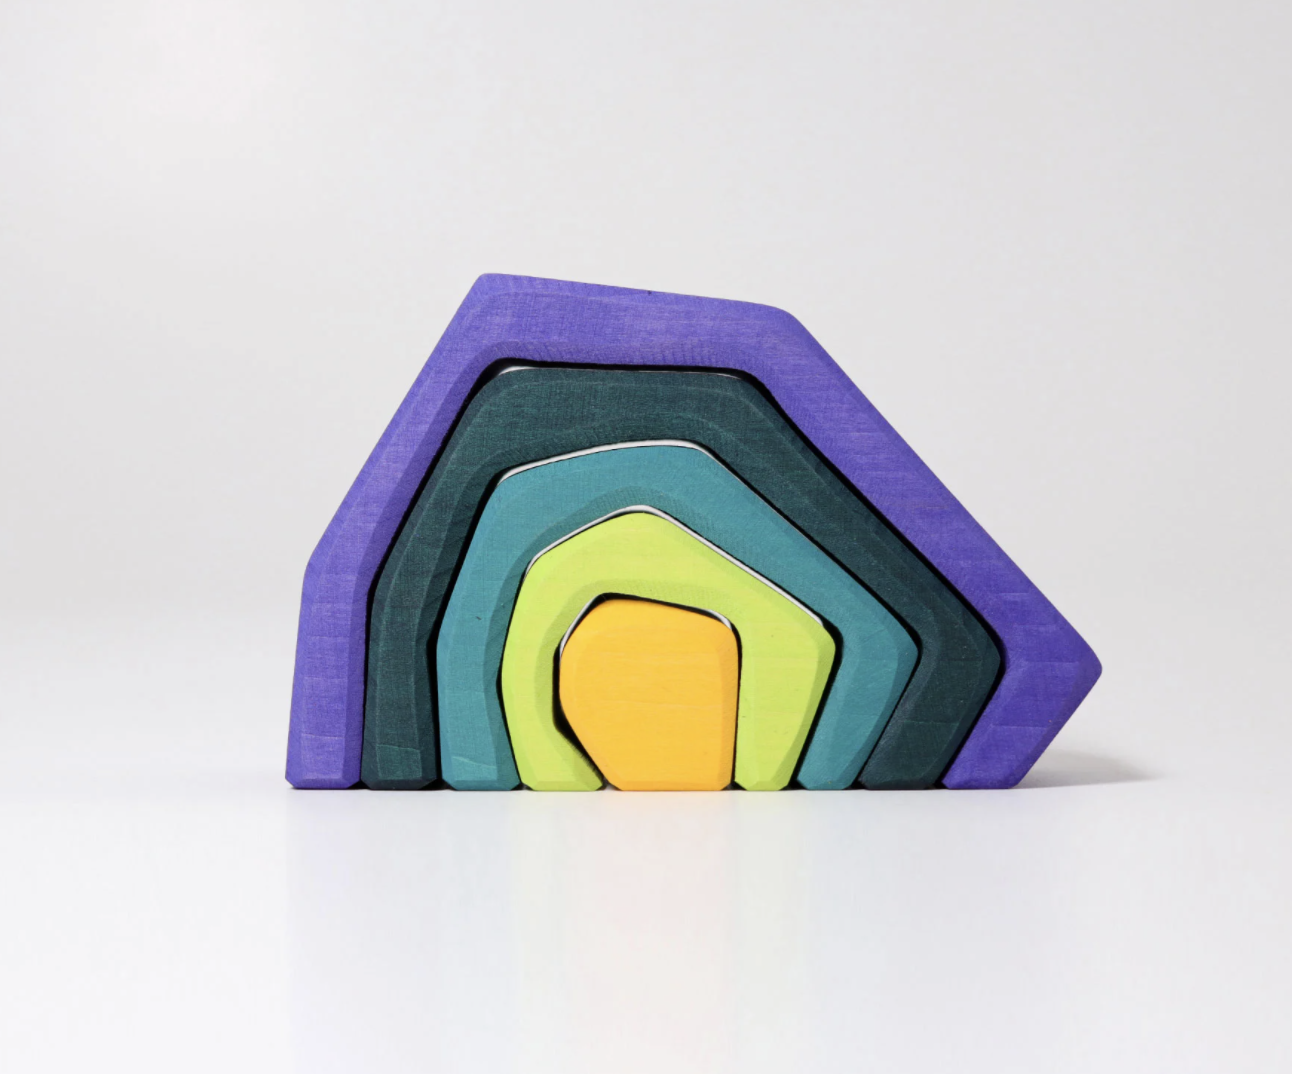 Grimms Stacking Earth Element Grimm Wooden Toys at Little Earth Nest Eco Shop